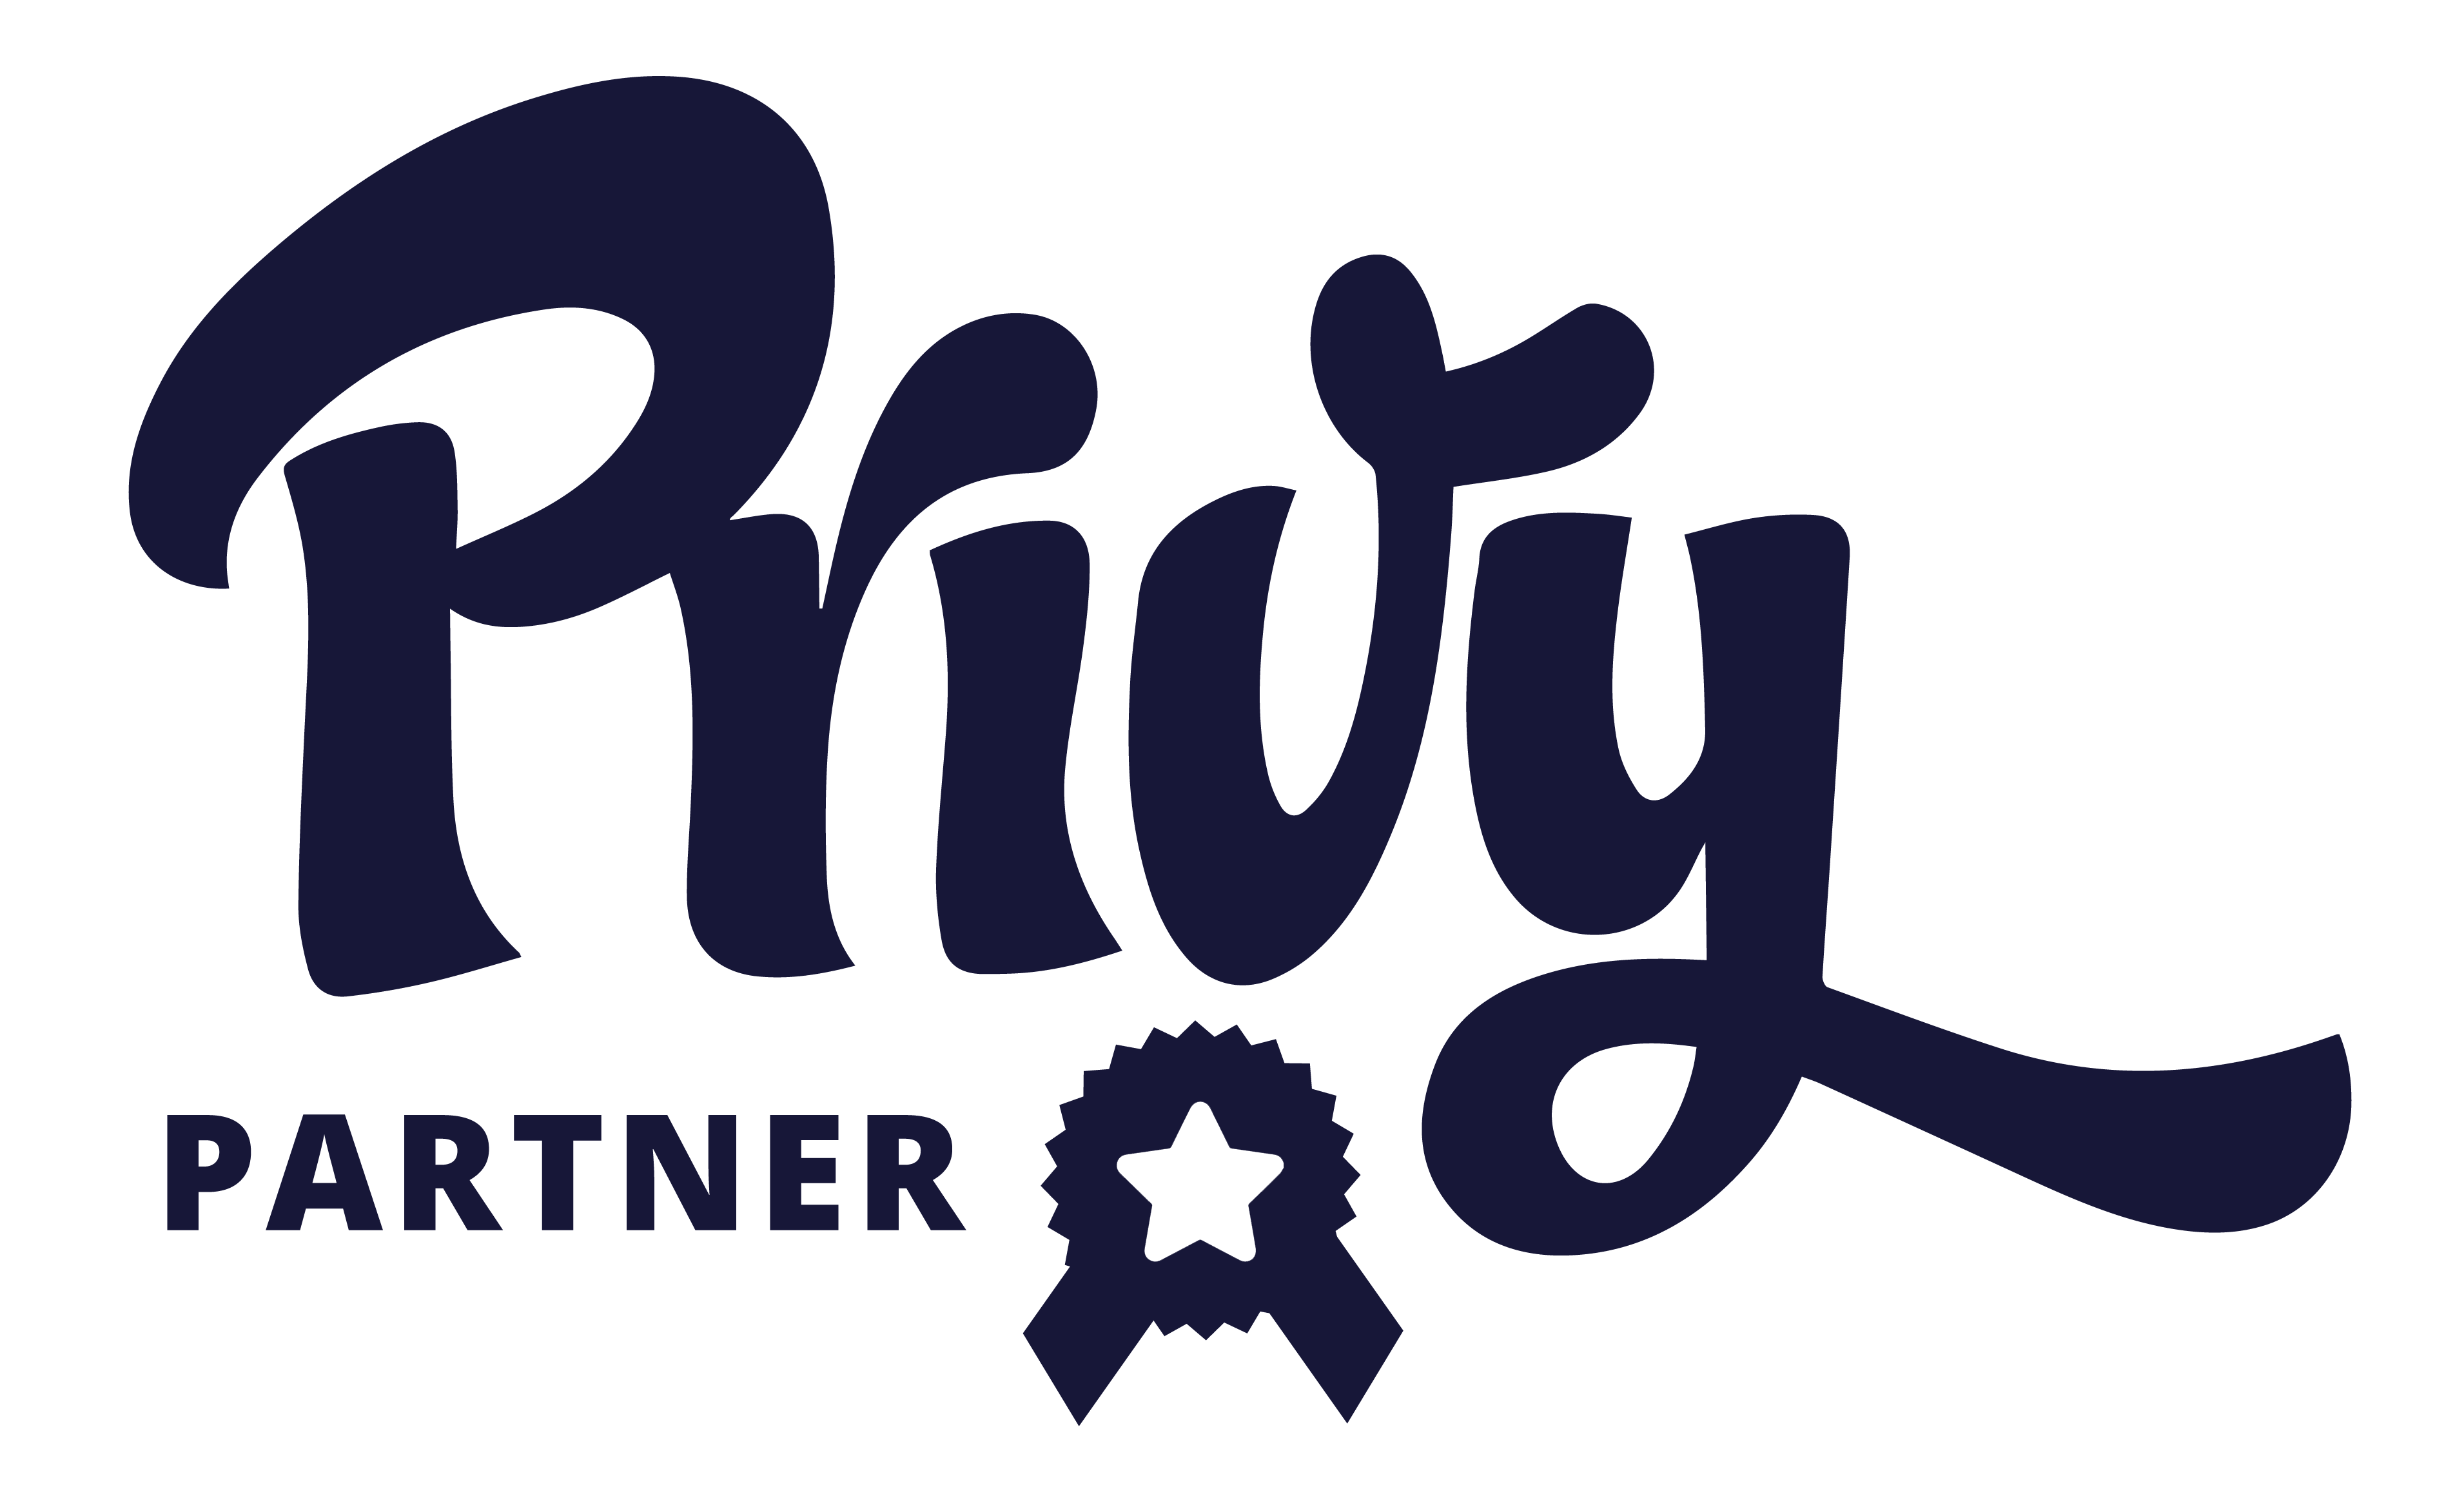 Privy%20Partner%20Logo_Midnight%20Blue_Privy%20Partner%20Logo